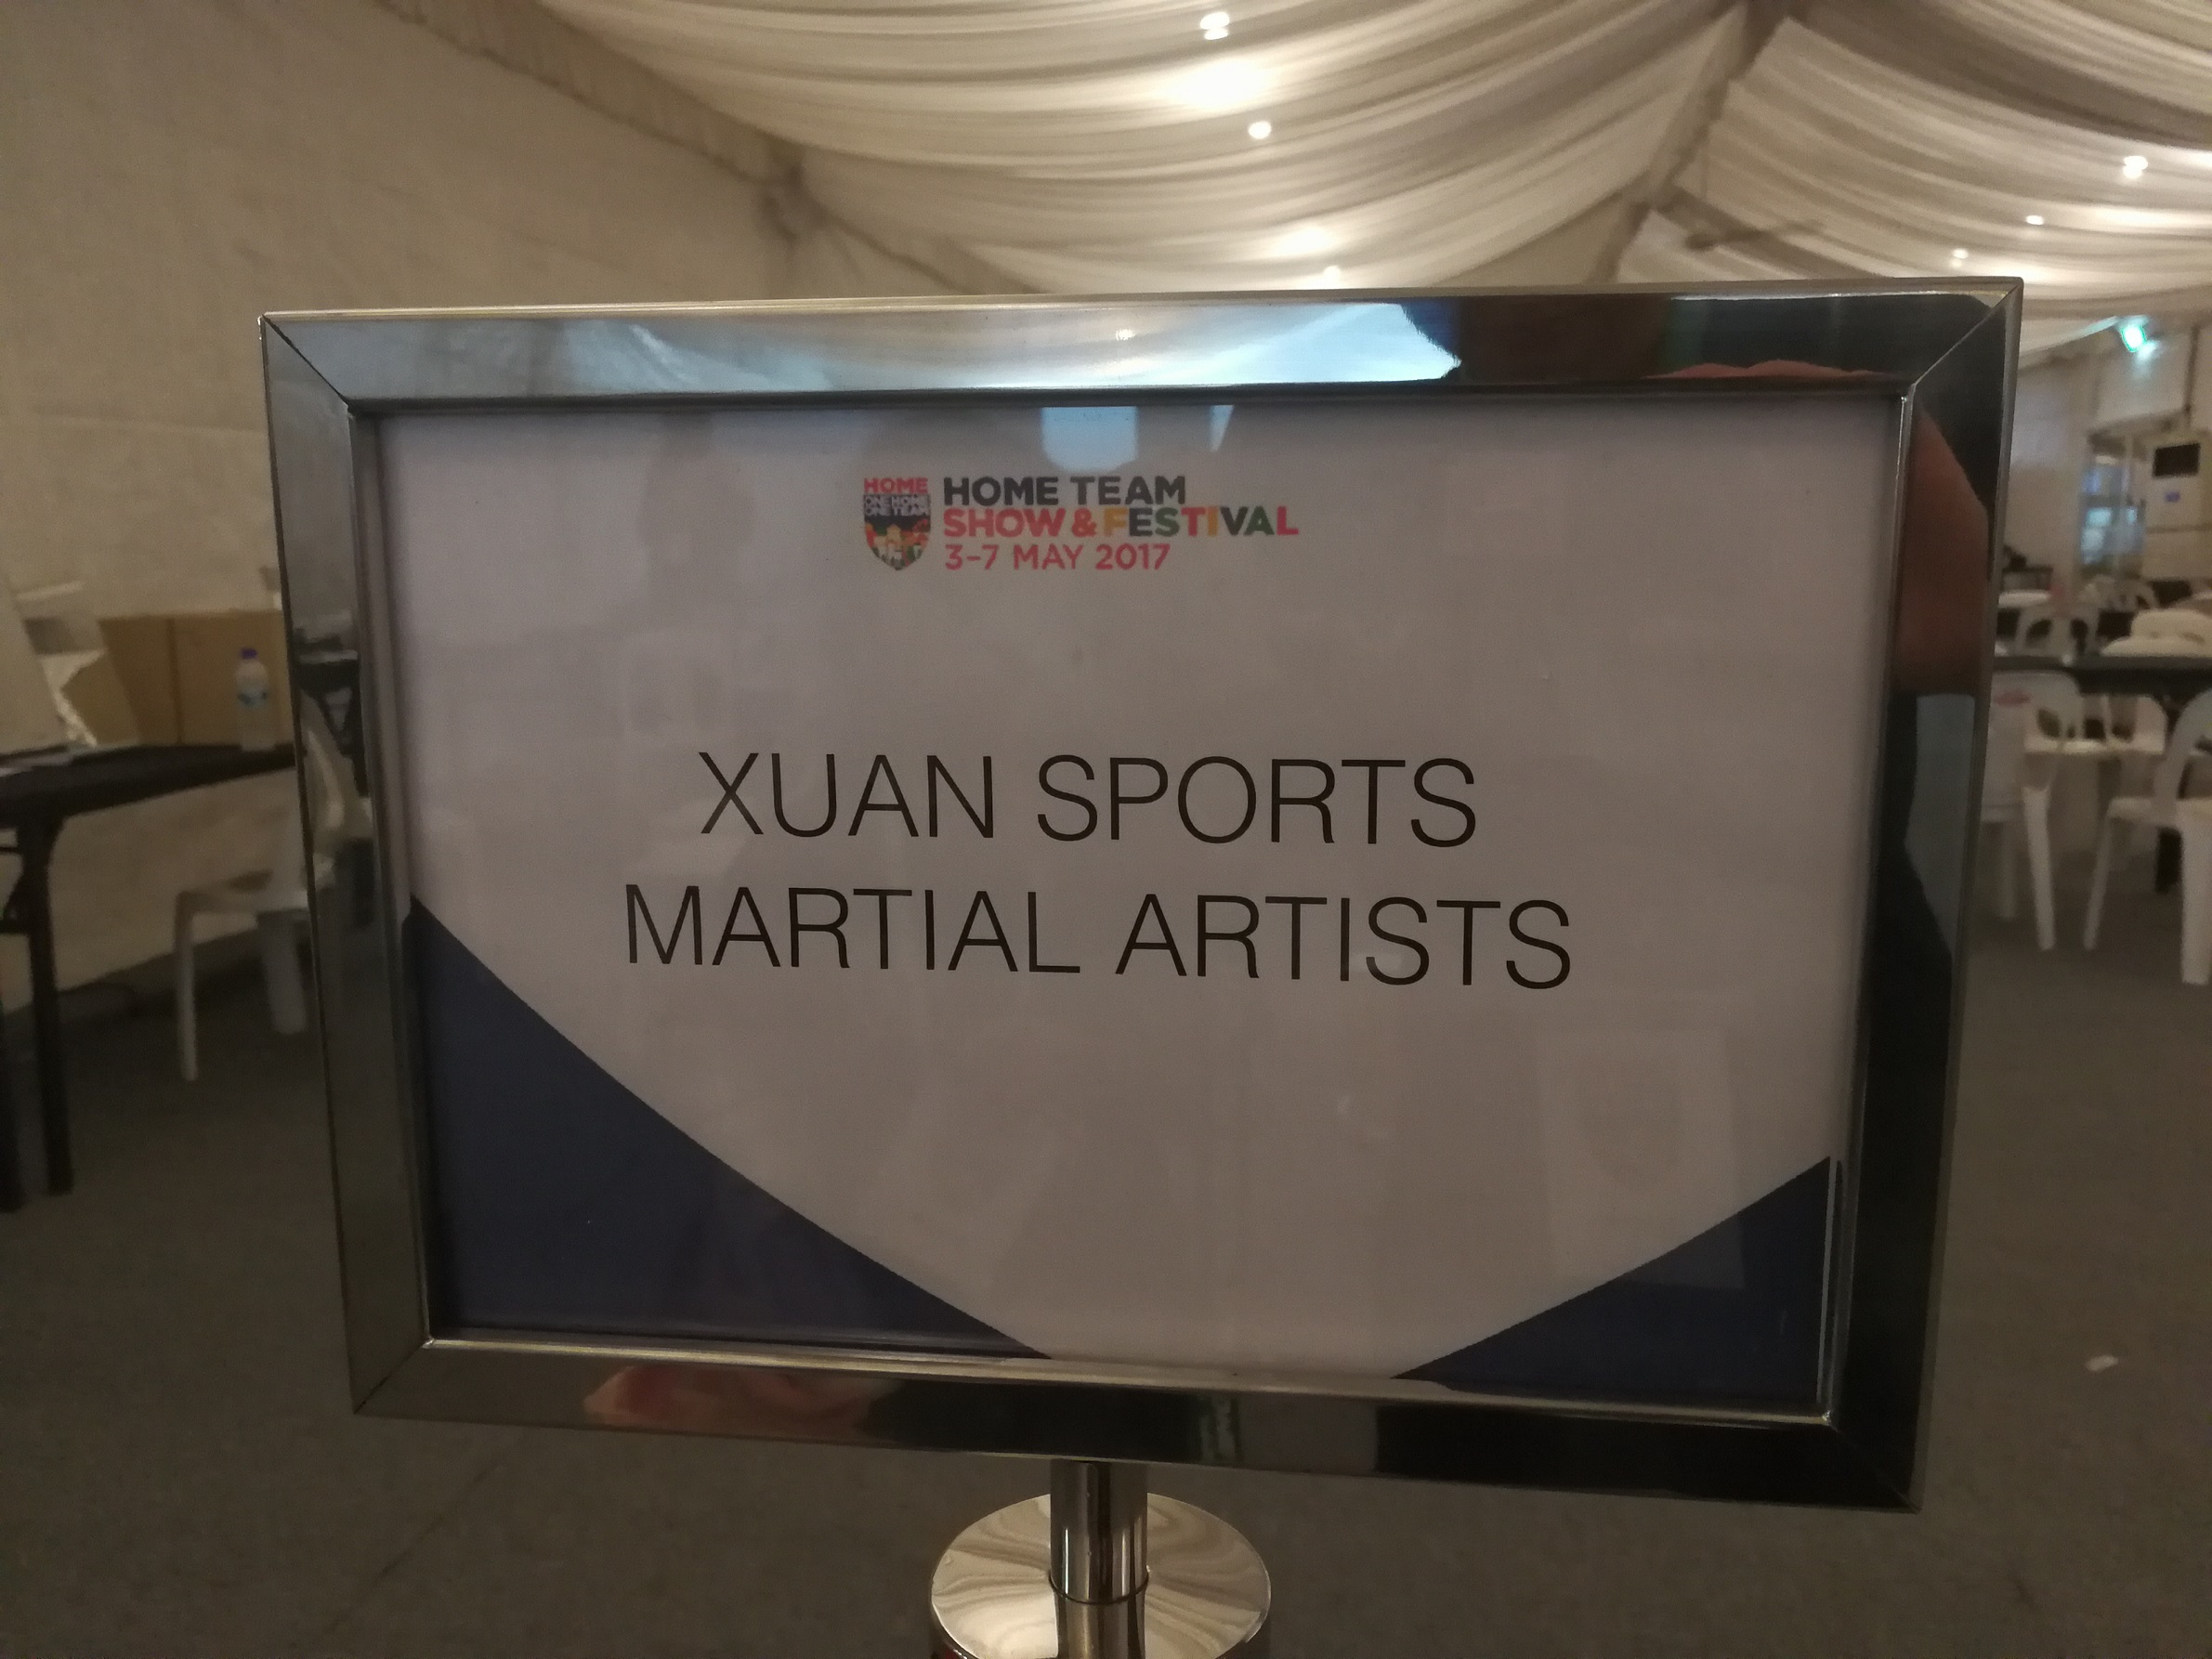 Xuan Sports Martial Artists